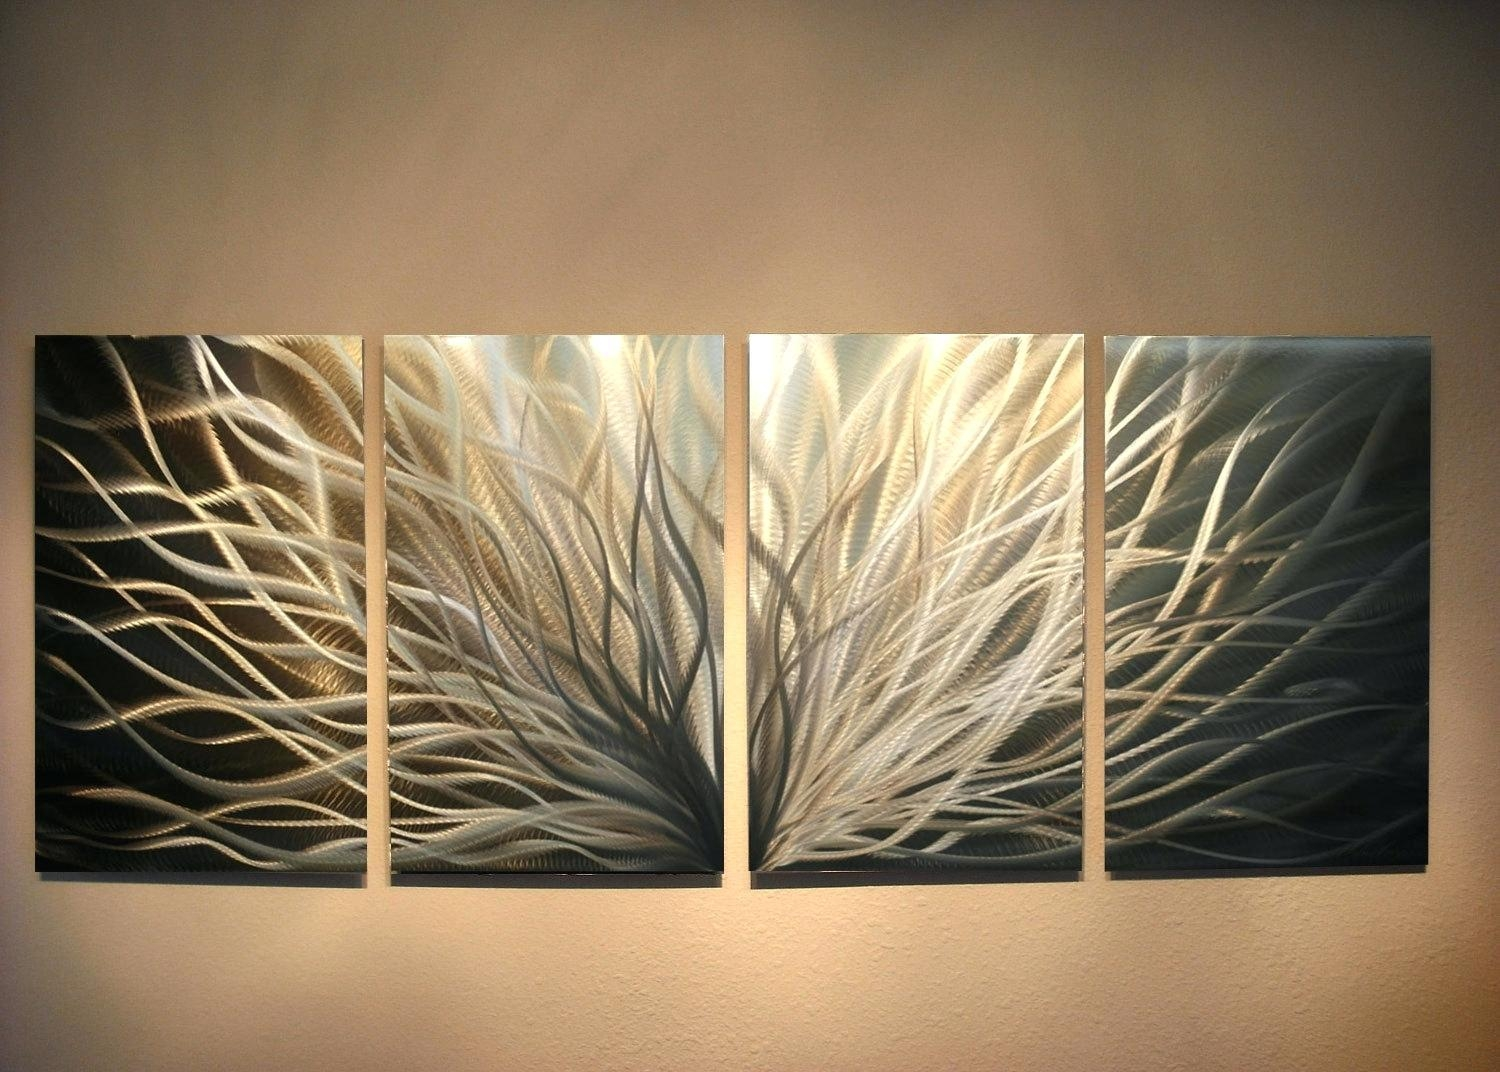 20 photos diy metal wall art wall art ideas